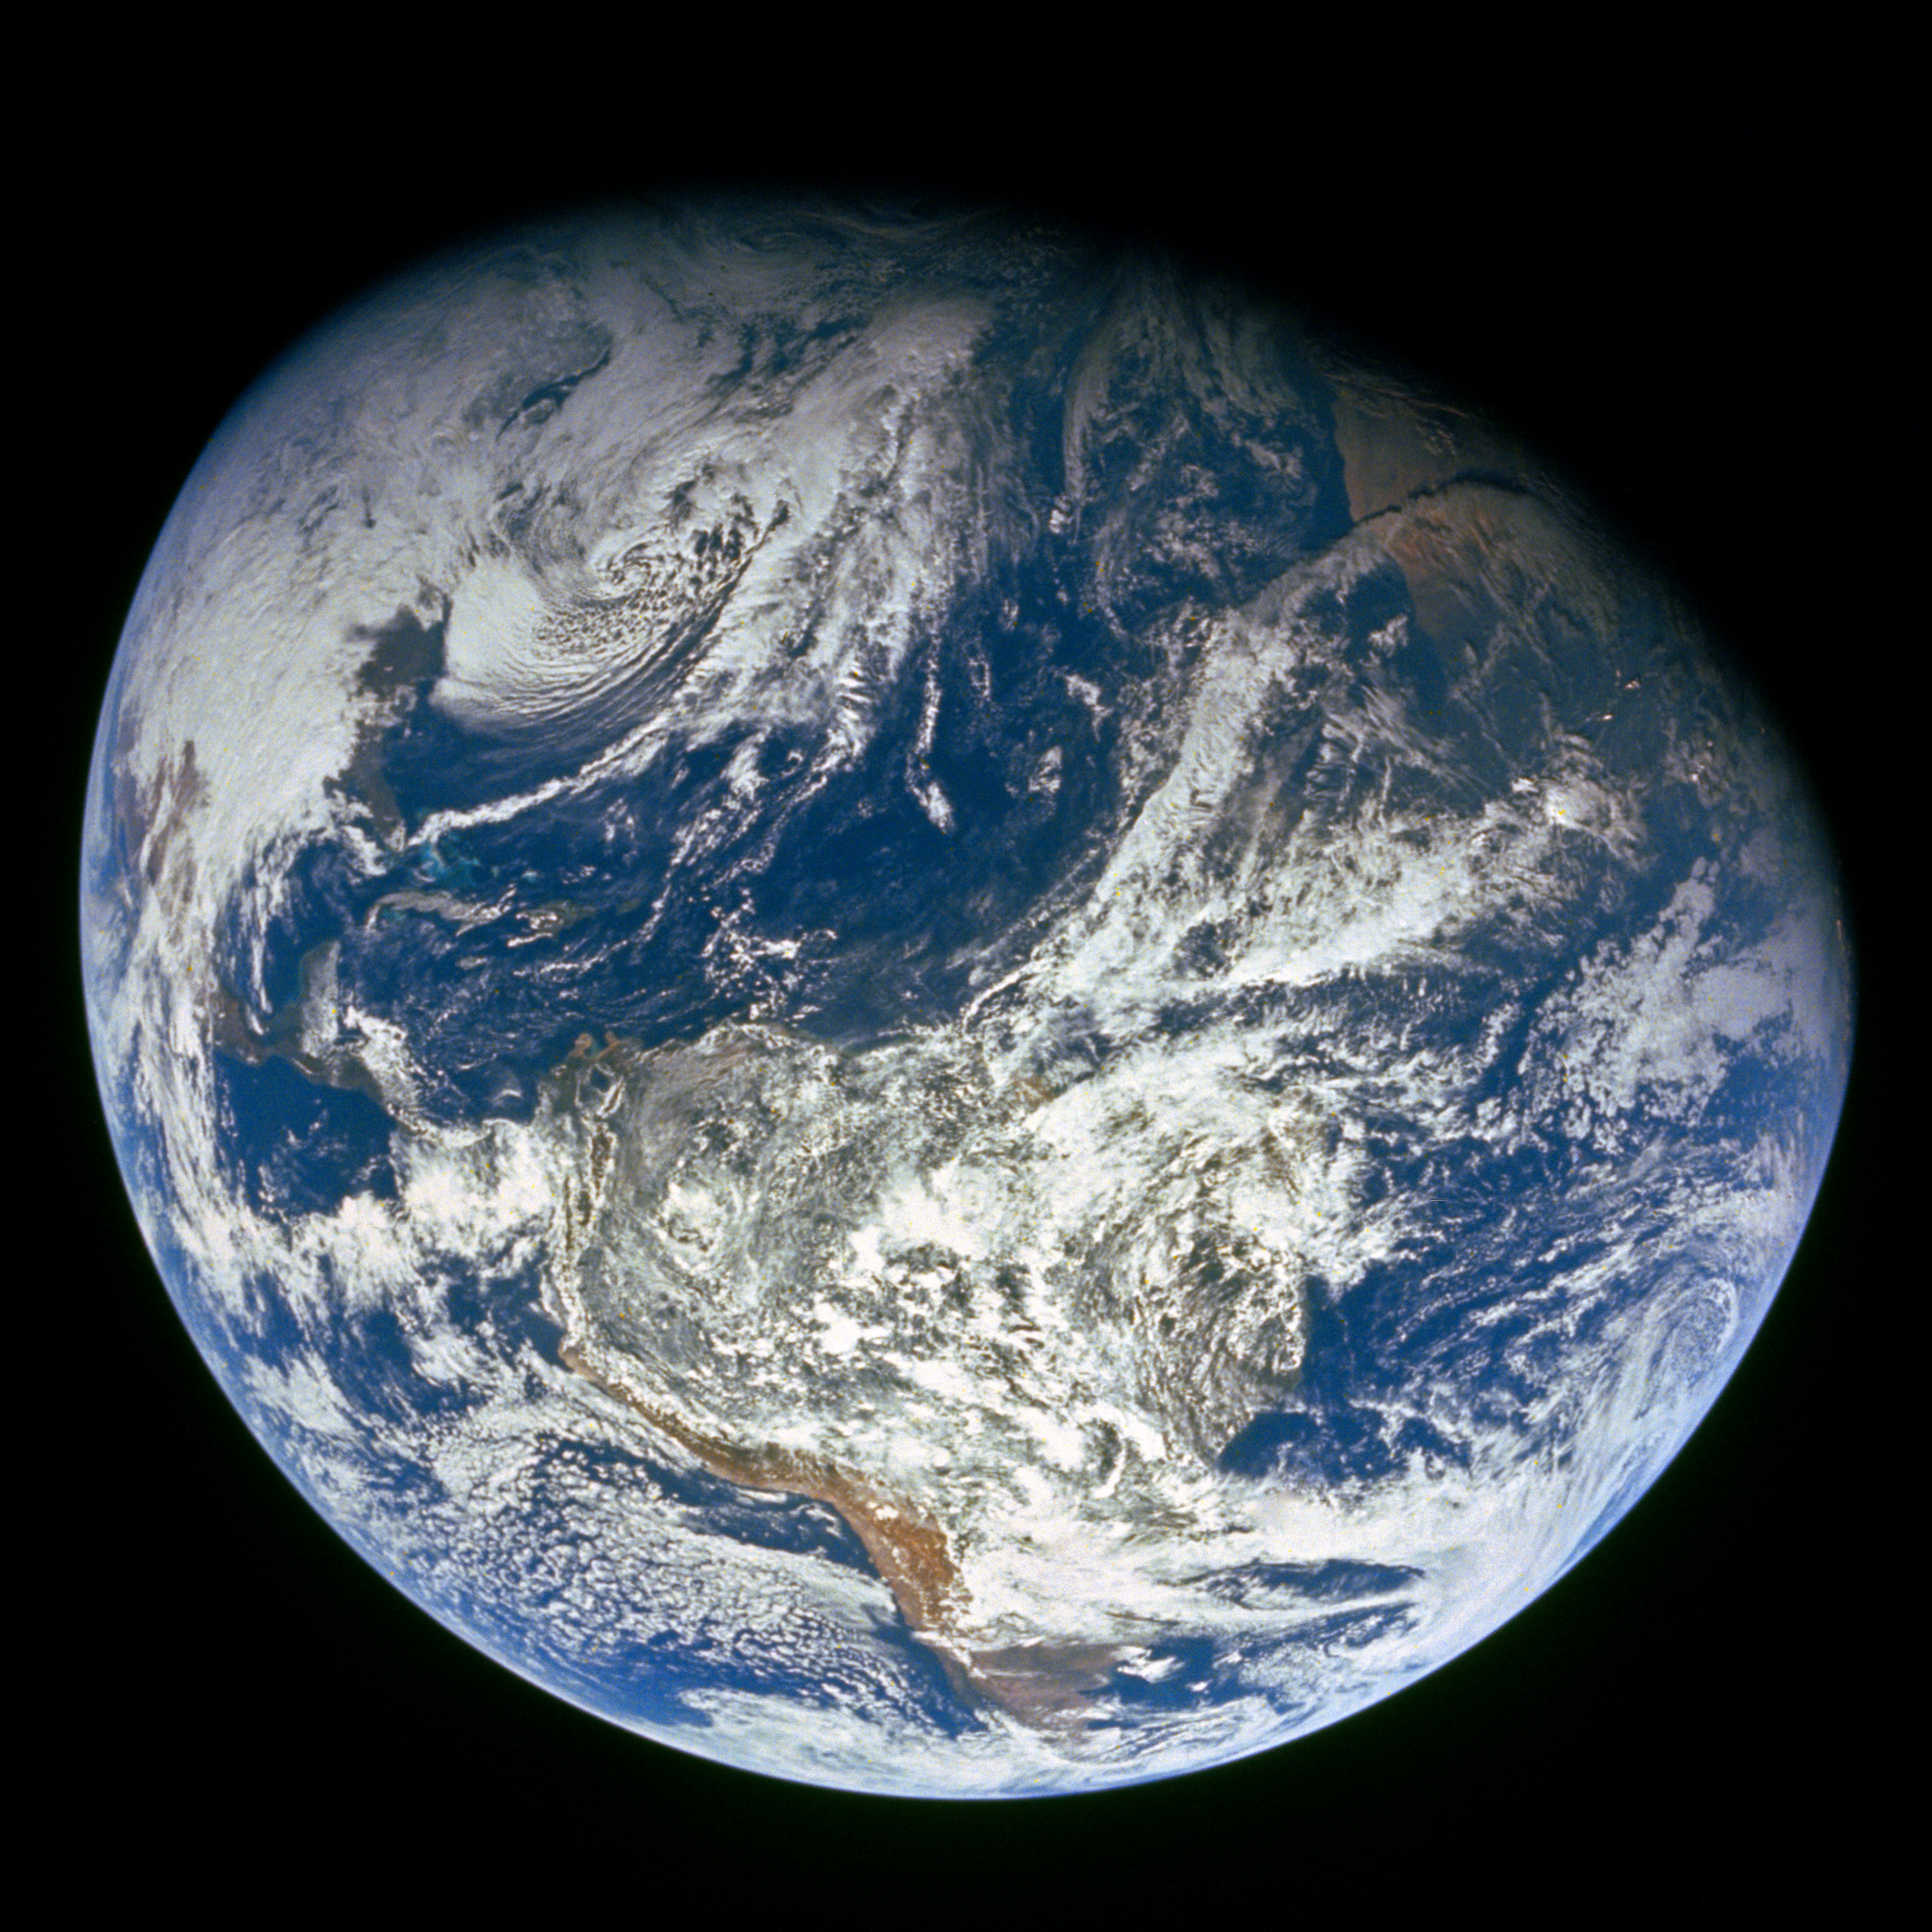 Apollo 8 image of Earth